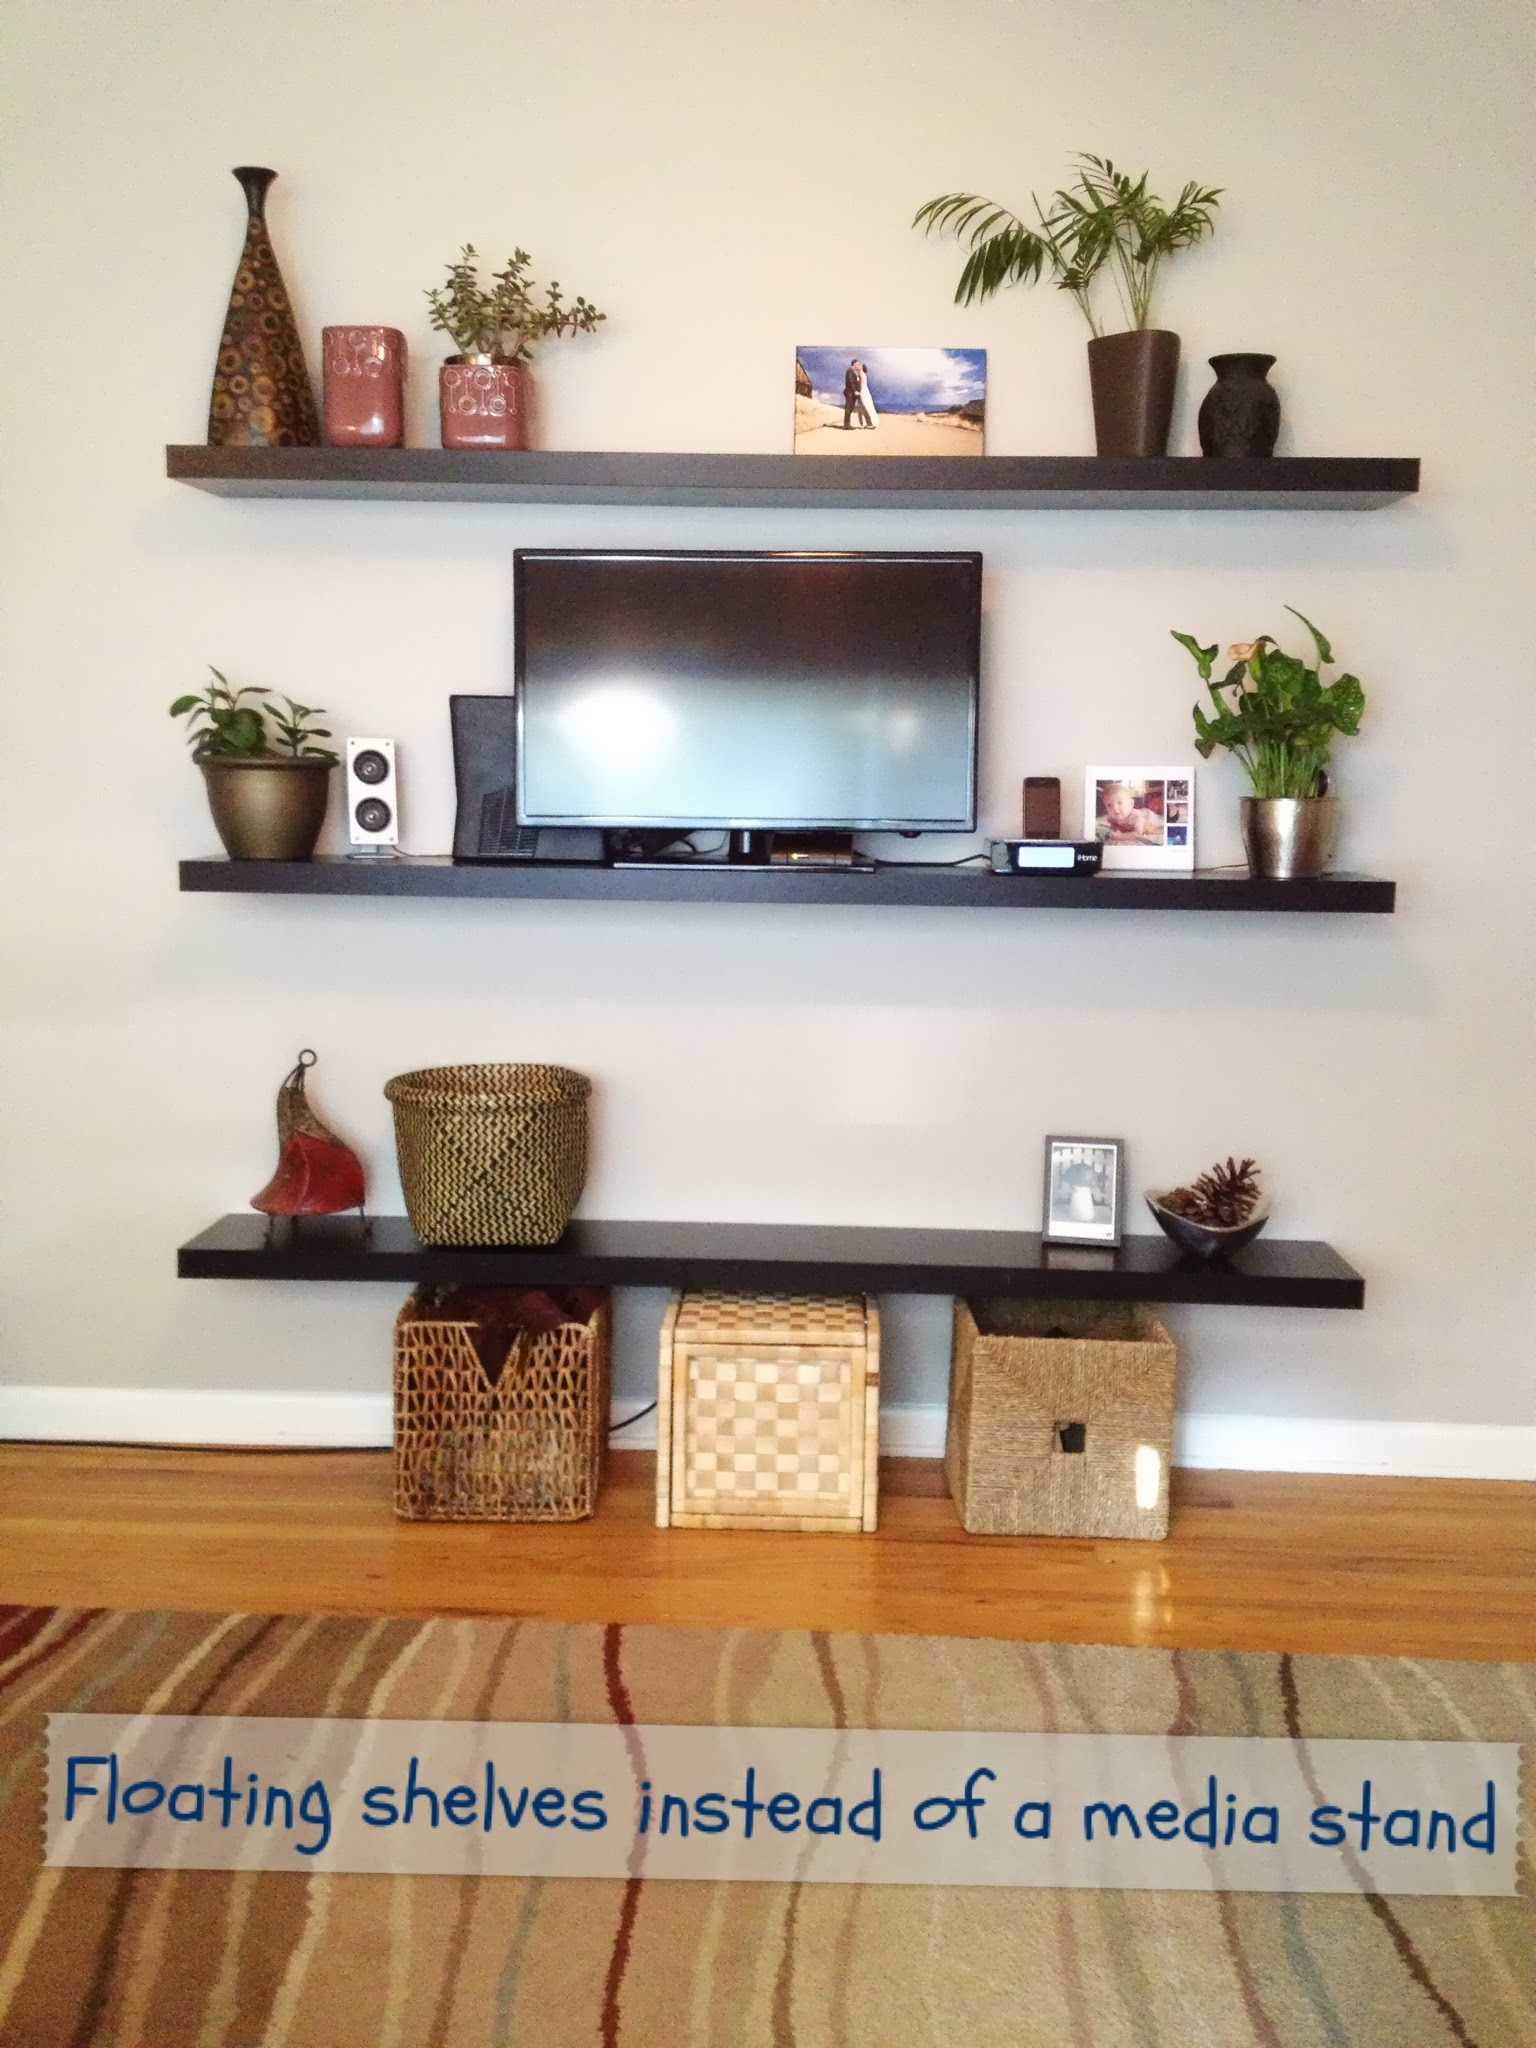 More Floating Shelves! â« Our Wee Home